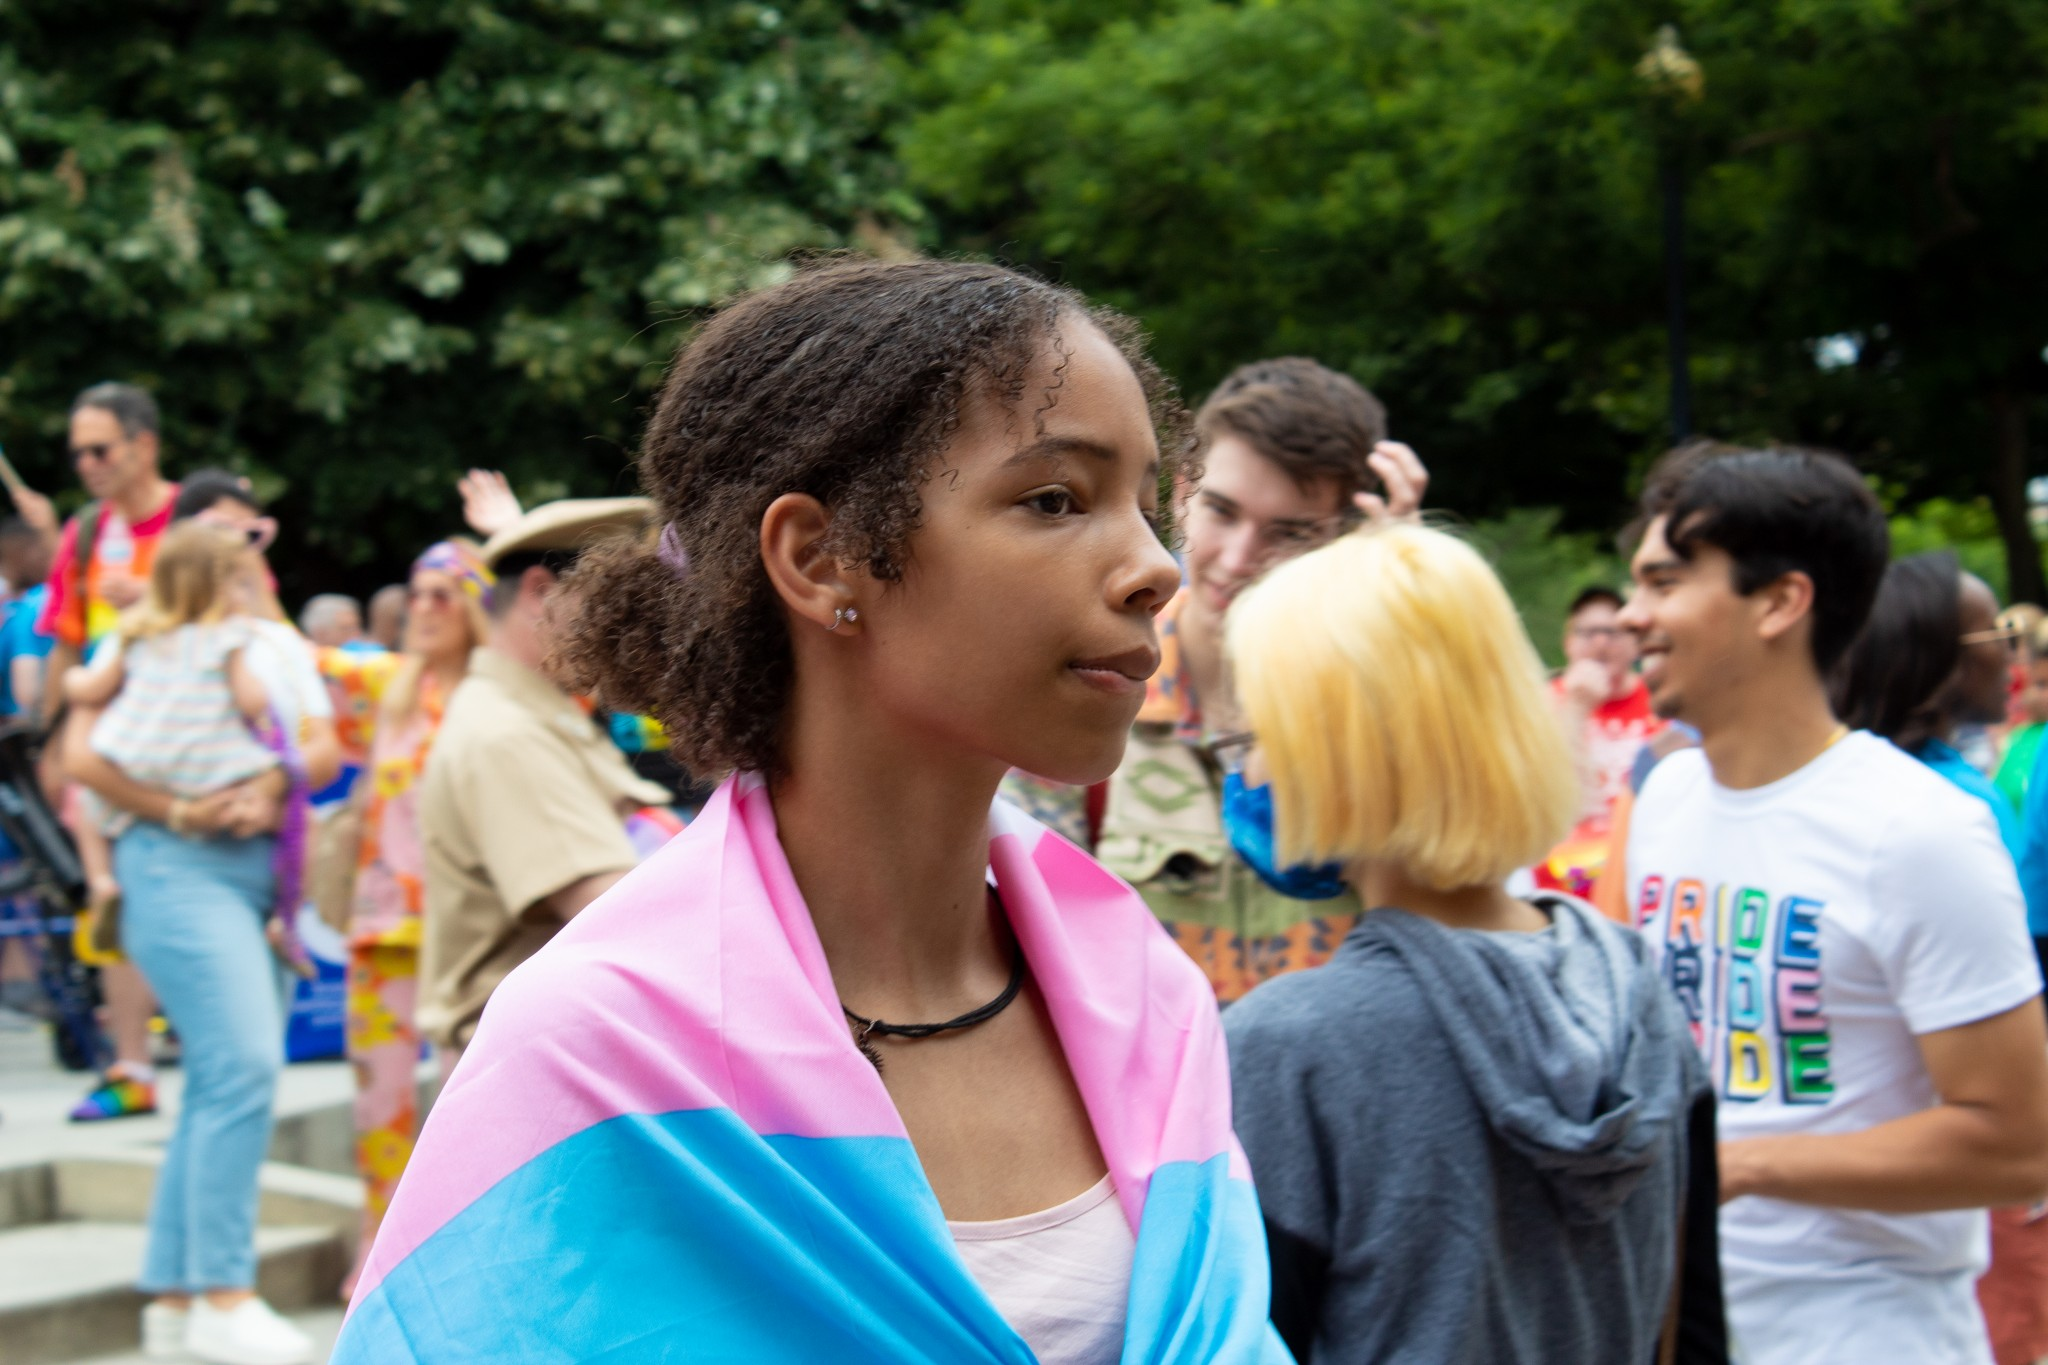 A child listens to speakers at Capital Pride on June 12, 2021 (The American Spectator)